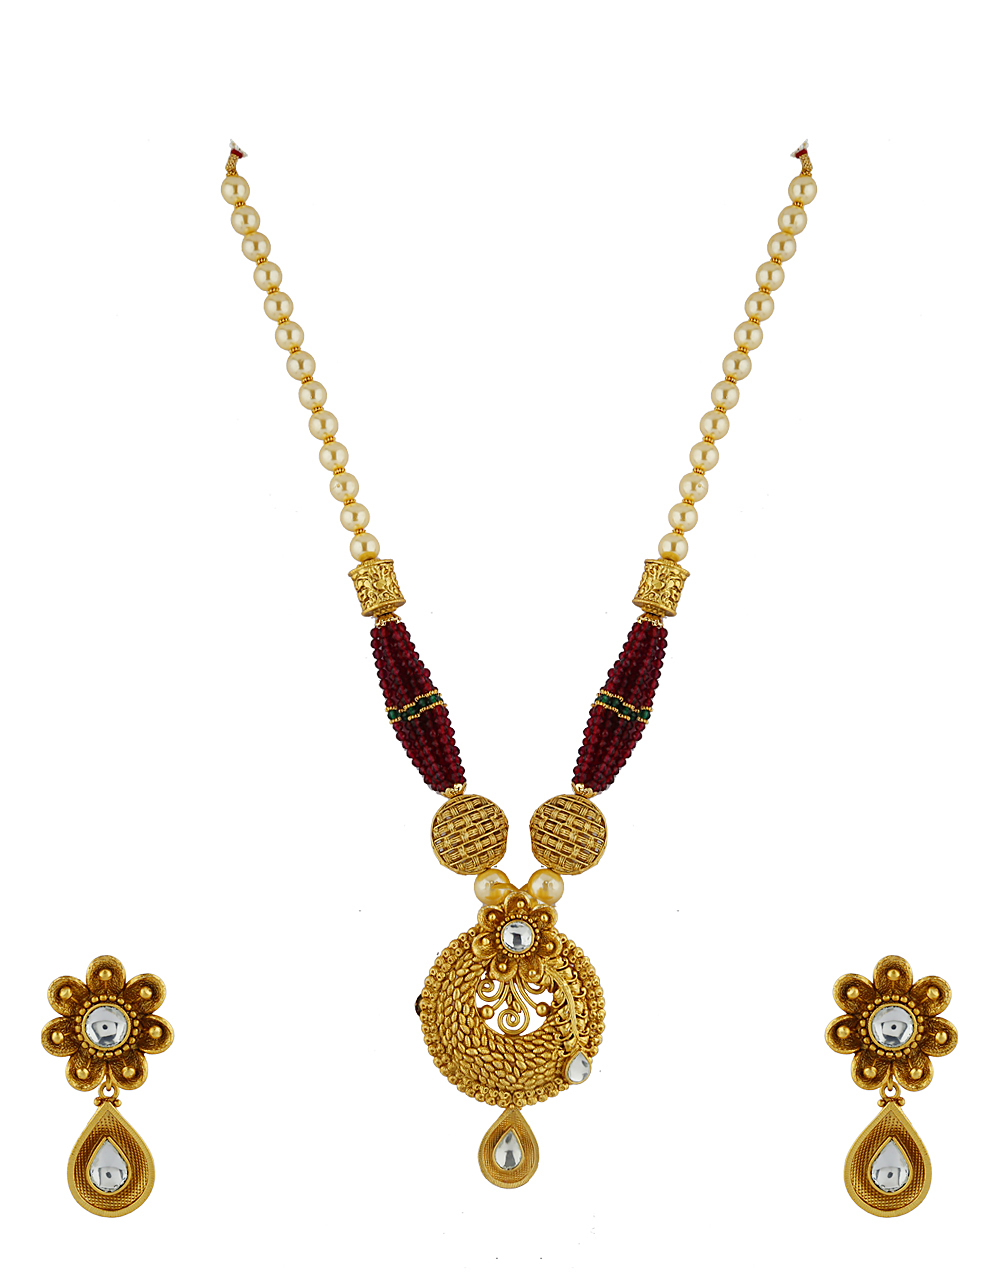 Round Design Gold Finish Pendant With Pair Of Earring For Women